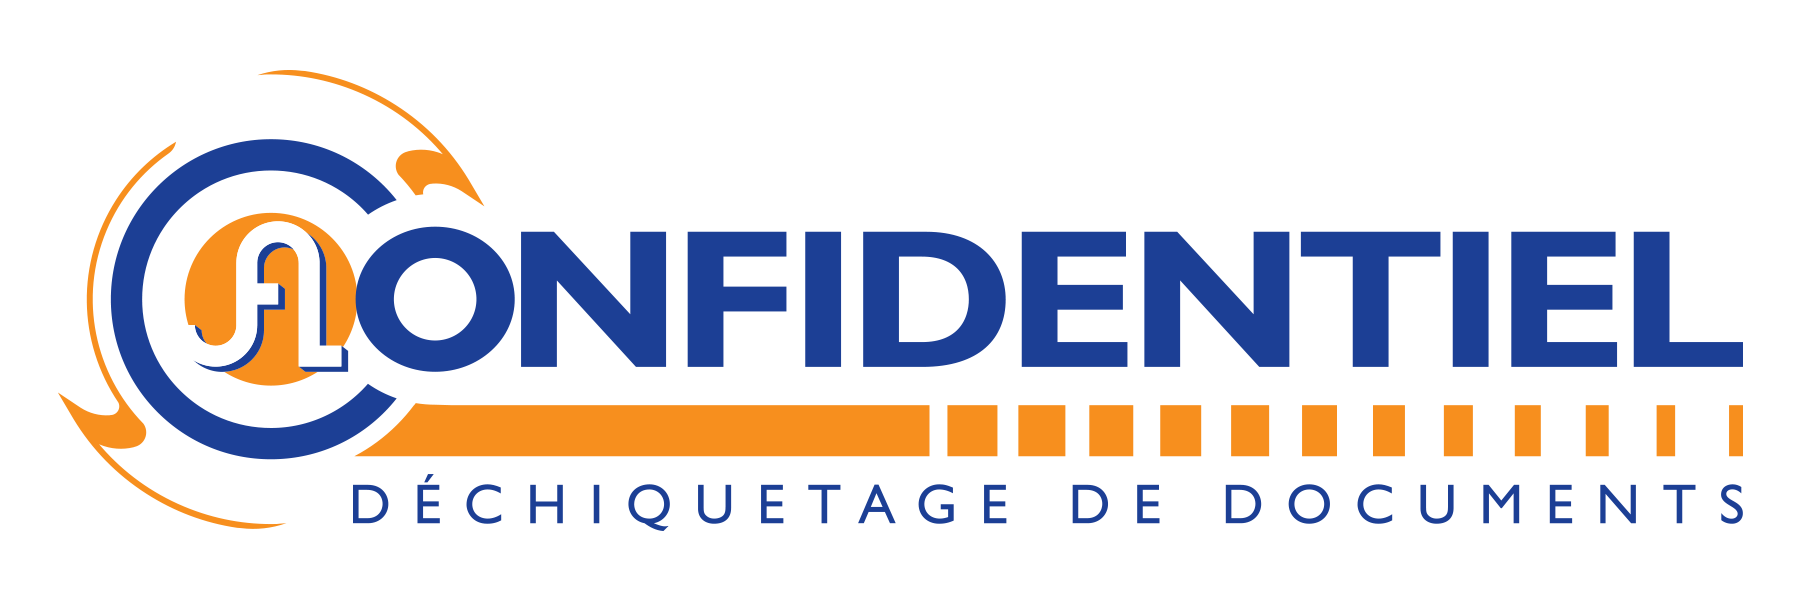 Confidentiel déchiquetage de documents